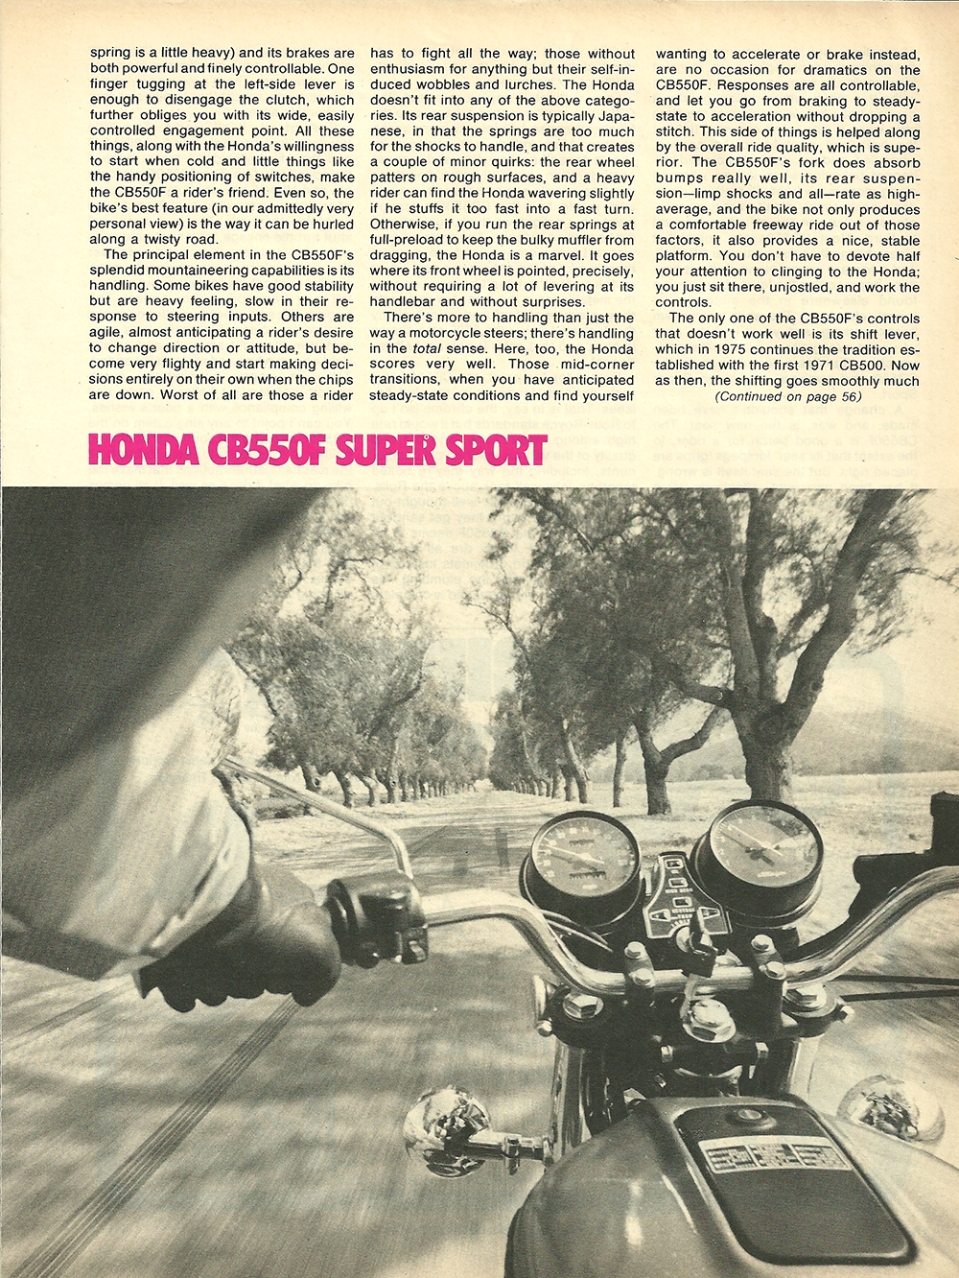 cycle-test-1975-honda-cb550f-super-sport-5